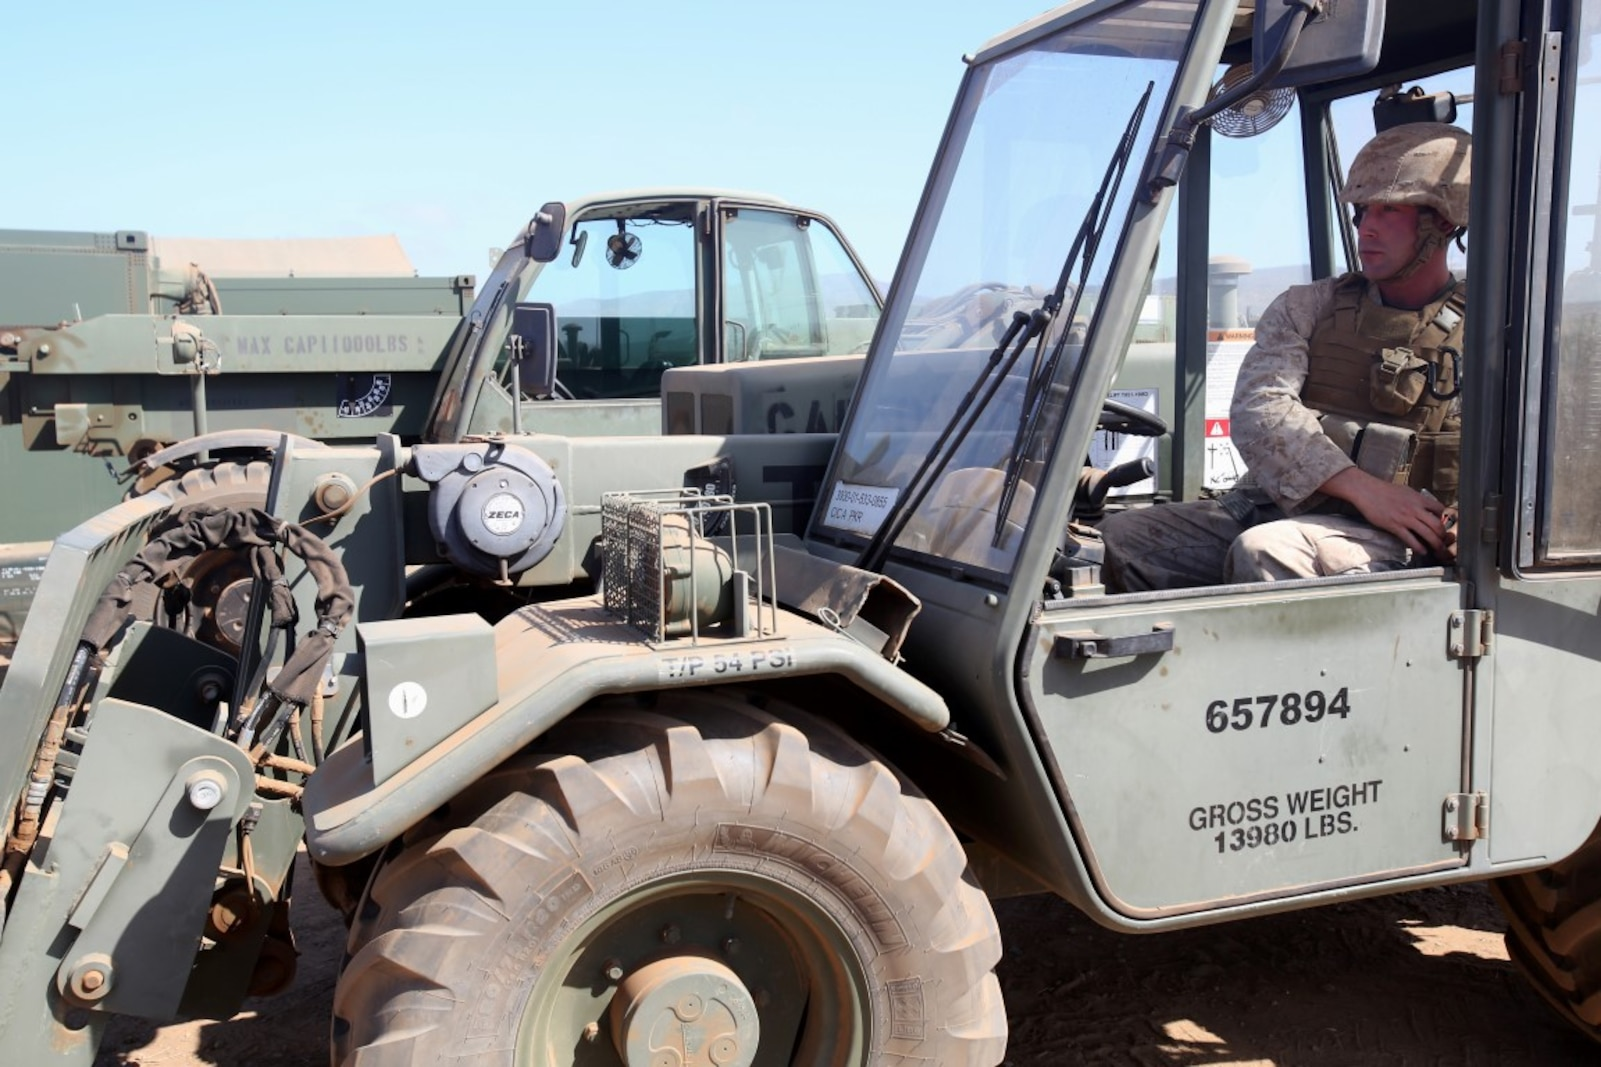 Lance Cpl. Francis Trezza, a heavy equipment operator with 9th Communication Battalion, I Marine Expeditionary Force, prepares to operate a forklift during the 2014 I Marine Expeditionary Brigade command post exercise aboard Camp Pendleton, Calif., June 19, 2014. The CPX was designed to help improve the 1st Marine Expeditionary Brigade's readiness for deployment. (U.S. Marine Corps photo by Lance Cpl. David Silvano/released)